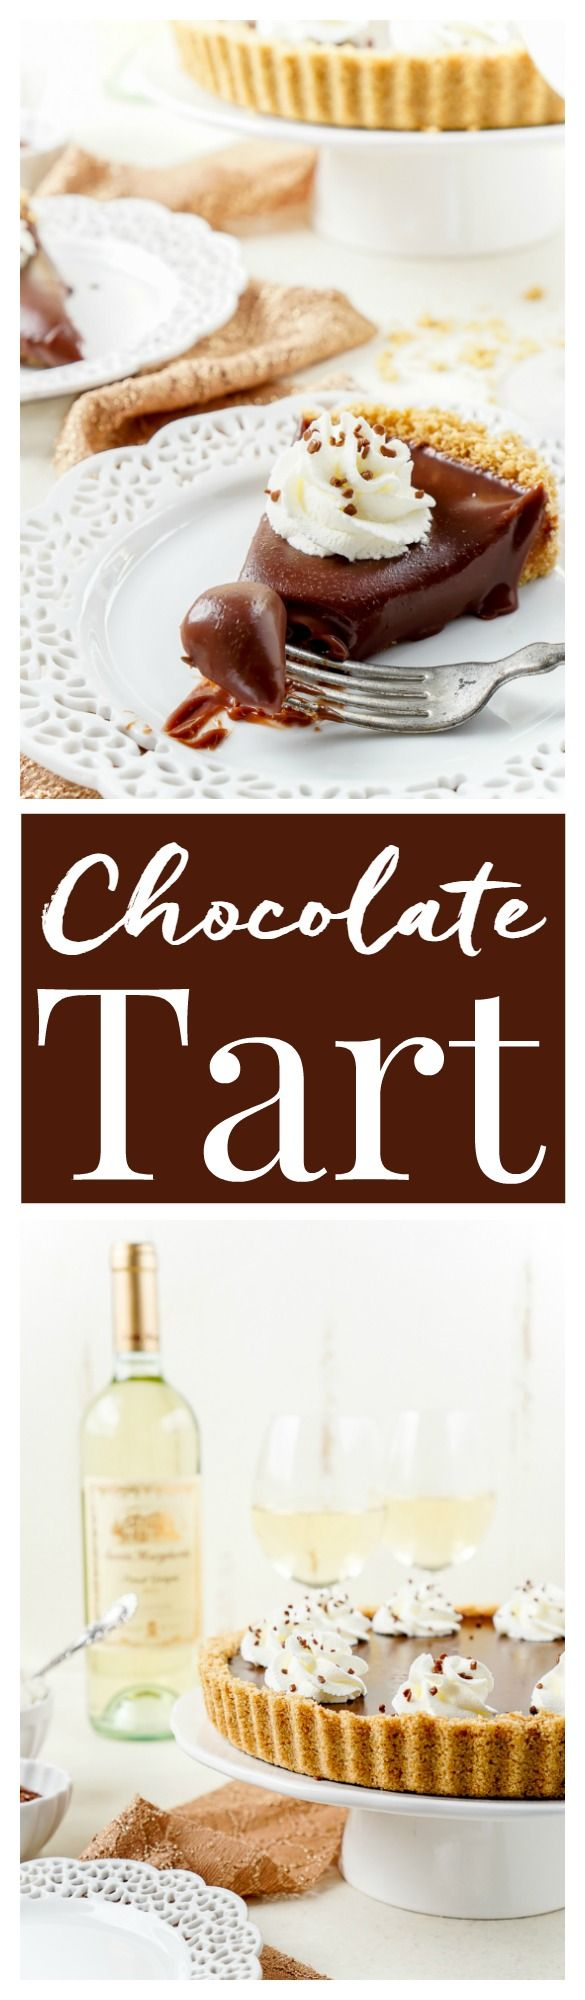 This 5-Ingredient No Bake Milk Chocolate Tart is both simple and decadent! It pairs beautifully with milk or Pinot Grigio for the perfect date night dessert! #SantaMargherita #ad